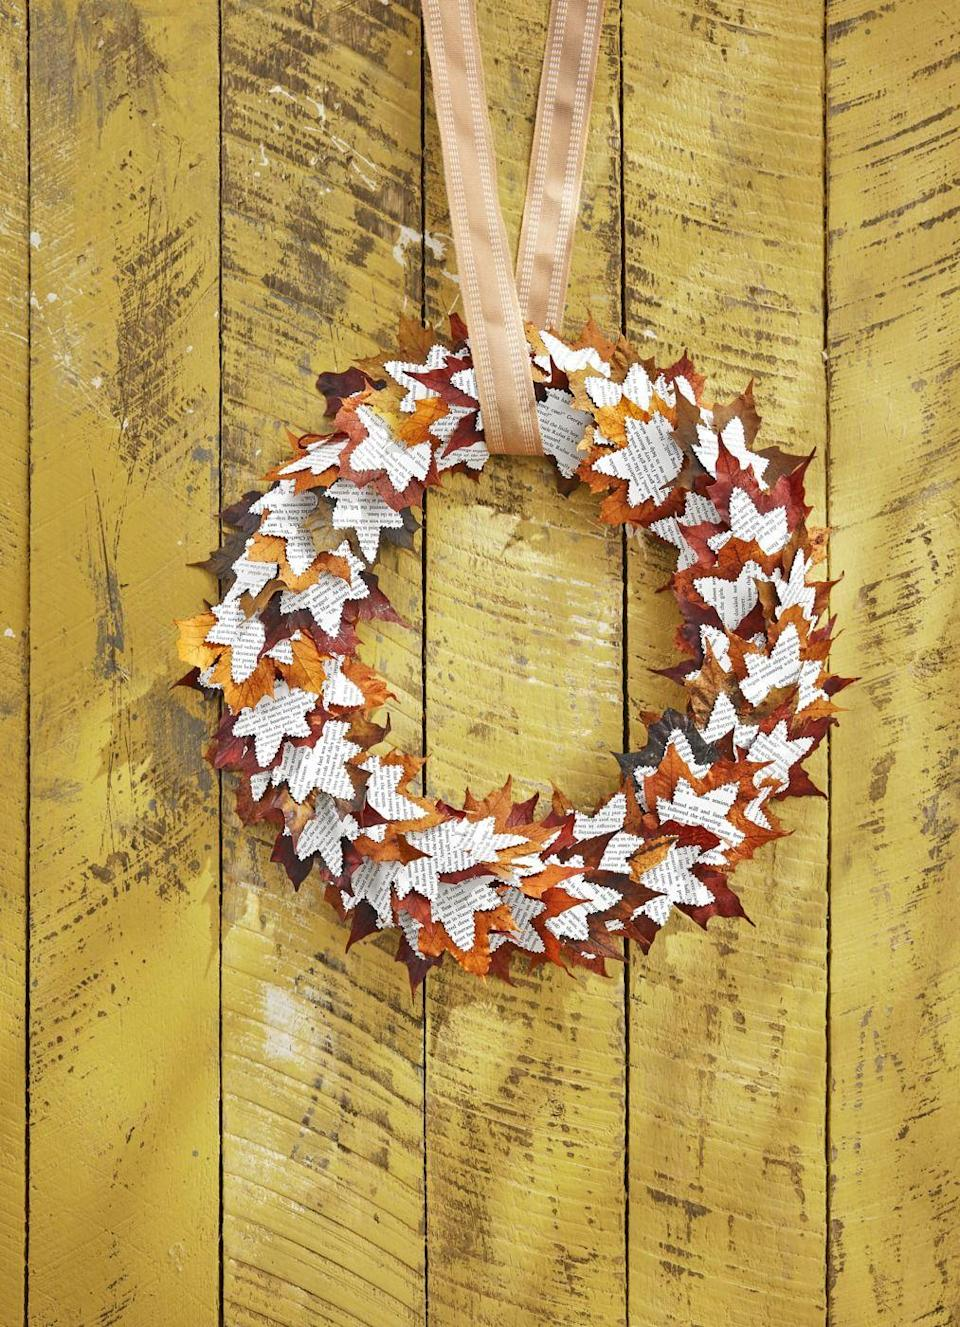 """<p>A paper wreath is an incredibly lovely addition to any front door. With leaf shapes galore, this one's perfectly seasonal too.</p><p><strong>Make the wreath:</strong> Draw a 3-inch-wide maple leaf shape on a piece of cardboard and cut out to create a stencil. Trace on original pages (or, preferred, photocopied pages) of a vintage book—consider a fall-themed title or mystery novel—and cut out approximately 100 leaves with decorative scissors that have a """"torn paper"""" edge. Attach book page leaves to maple leaves with hot glue. Attach layered leaves to a 16-inch wreath form with hot glue, layering and overlapping them as you go. Hang with burlap ribbon. </p>"""